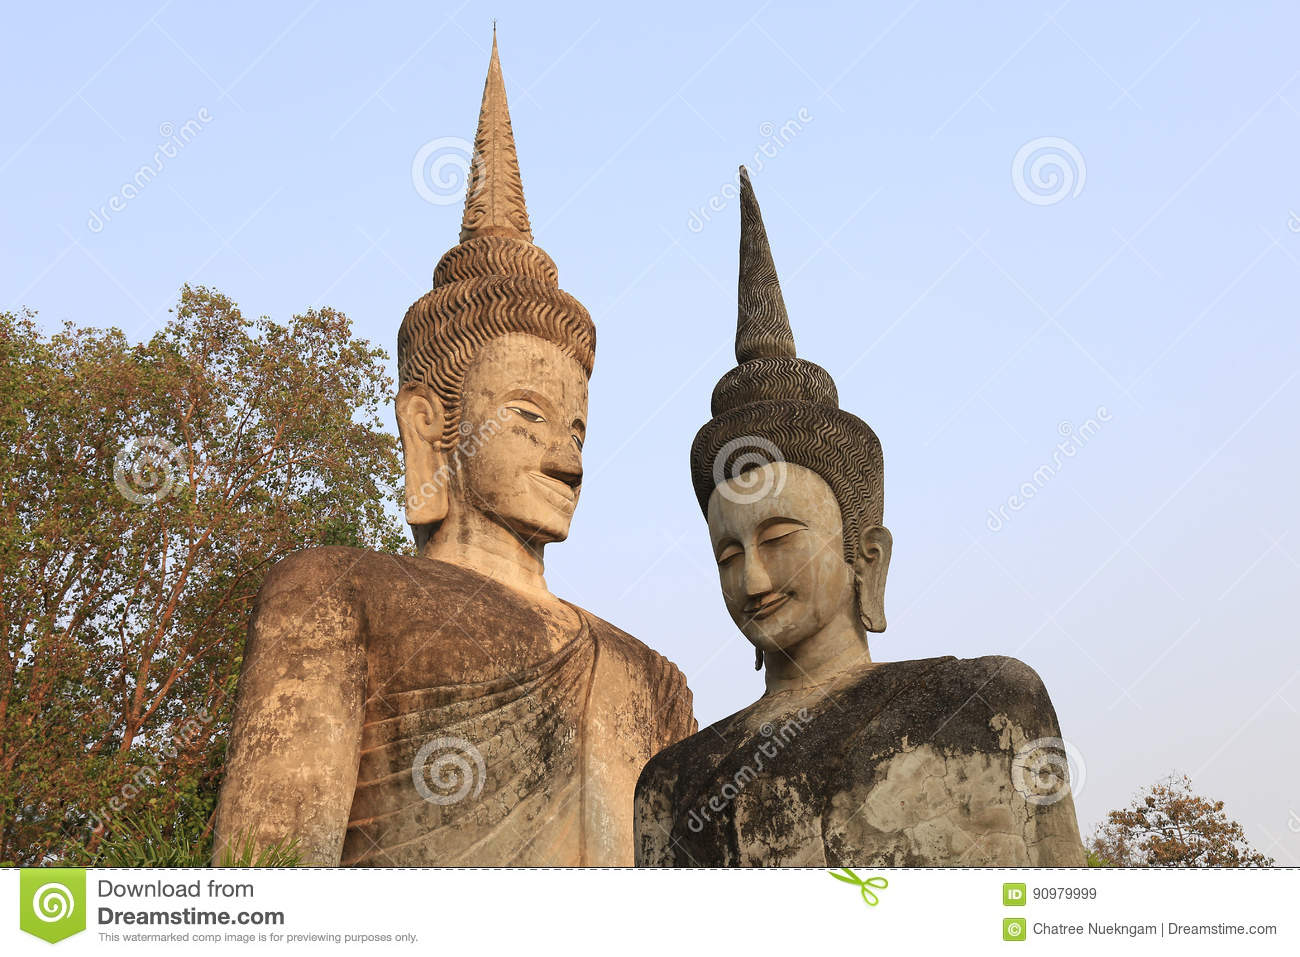 The Two buddha sculpture